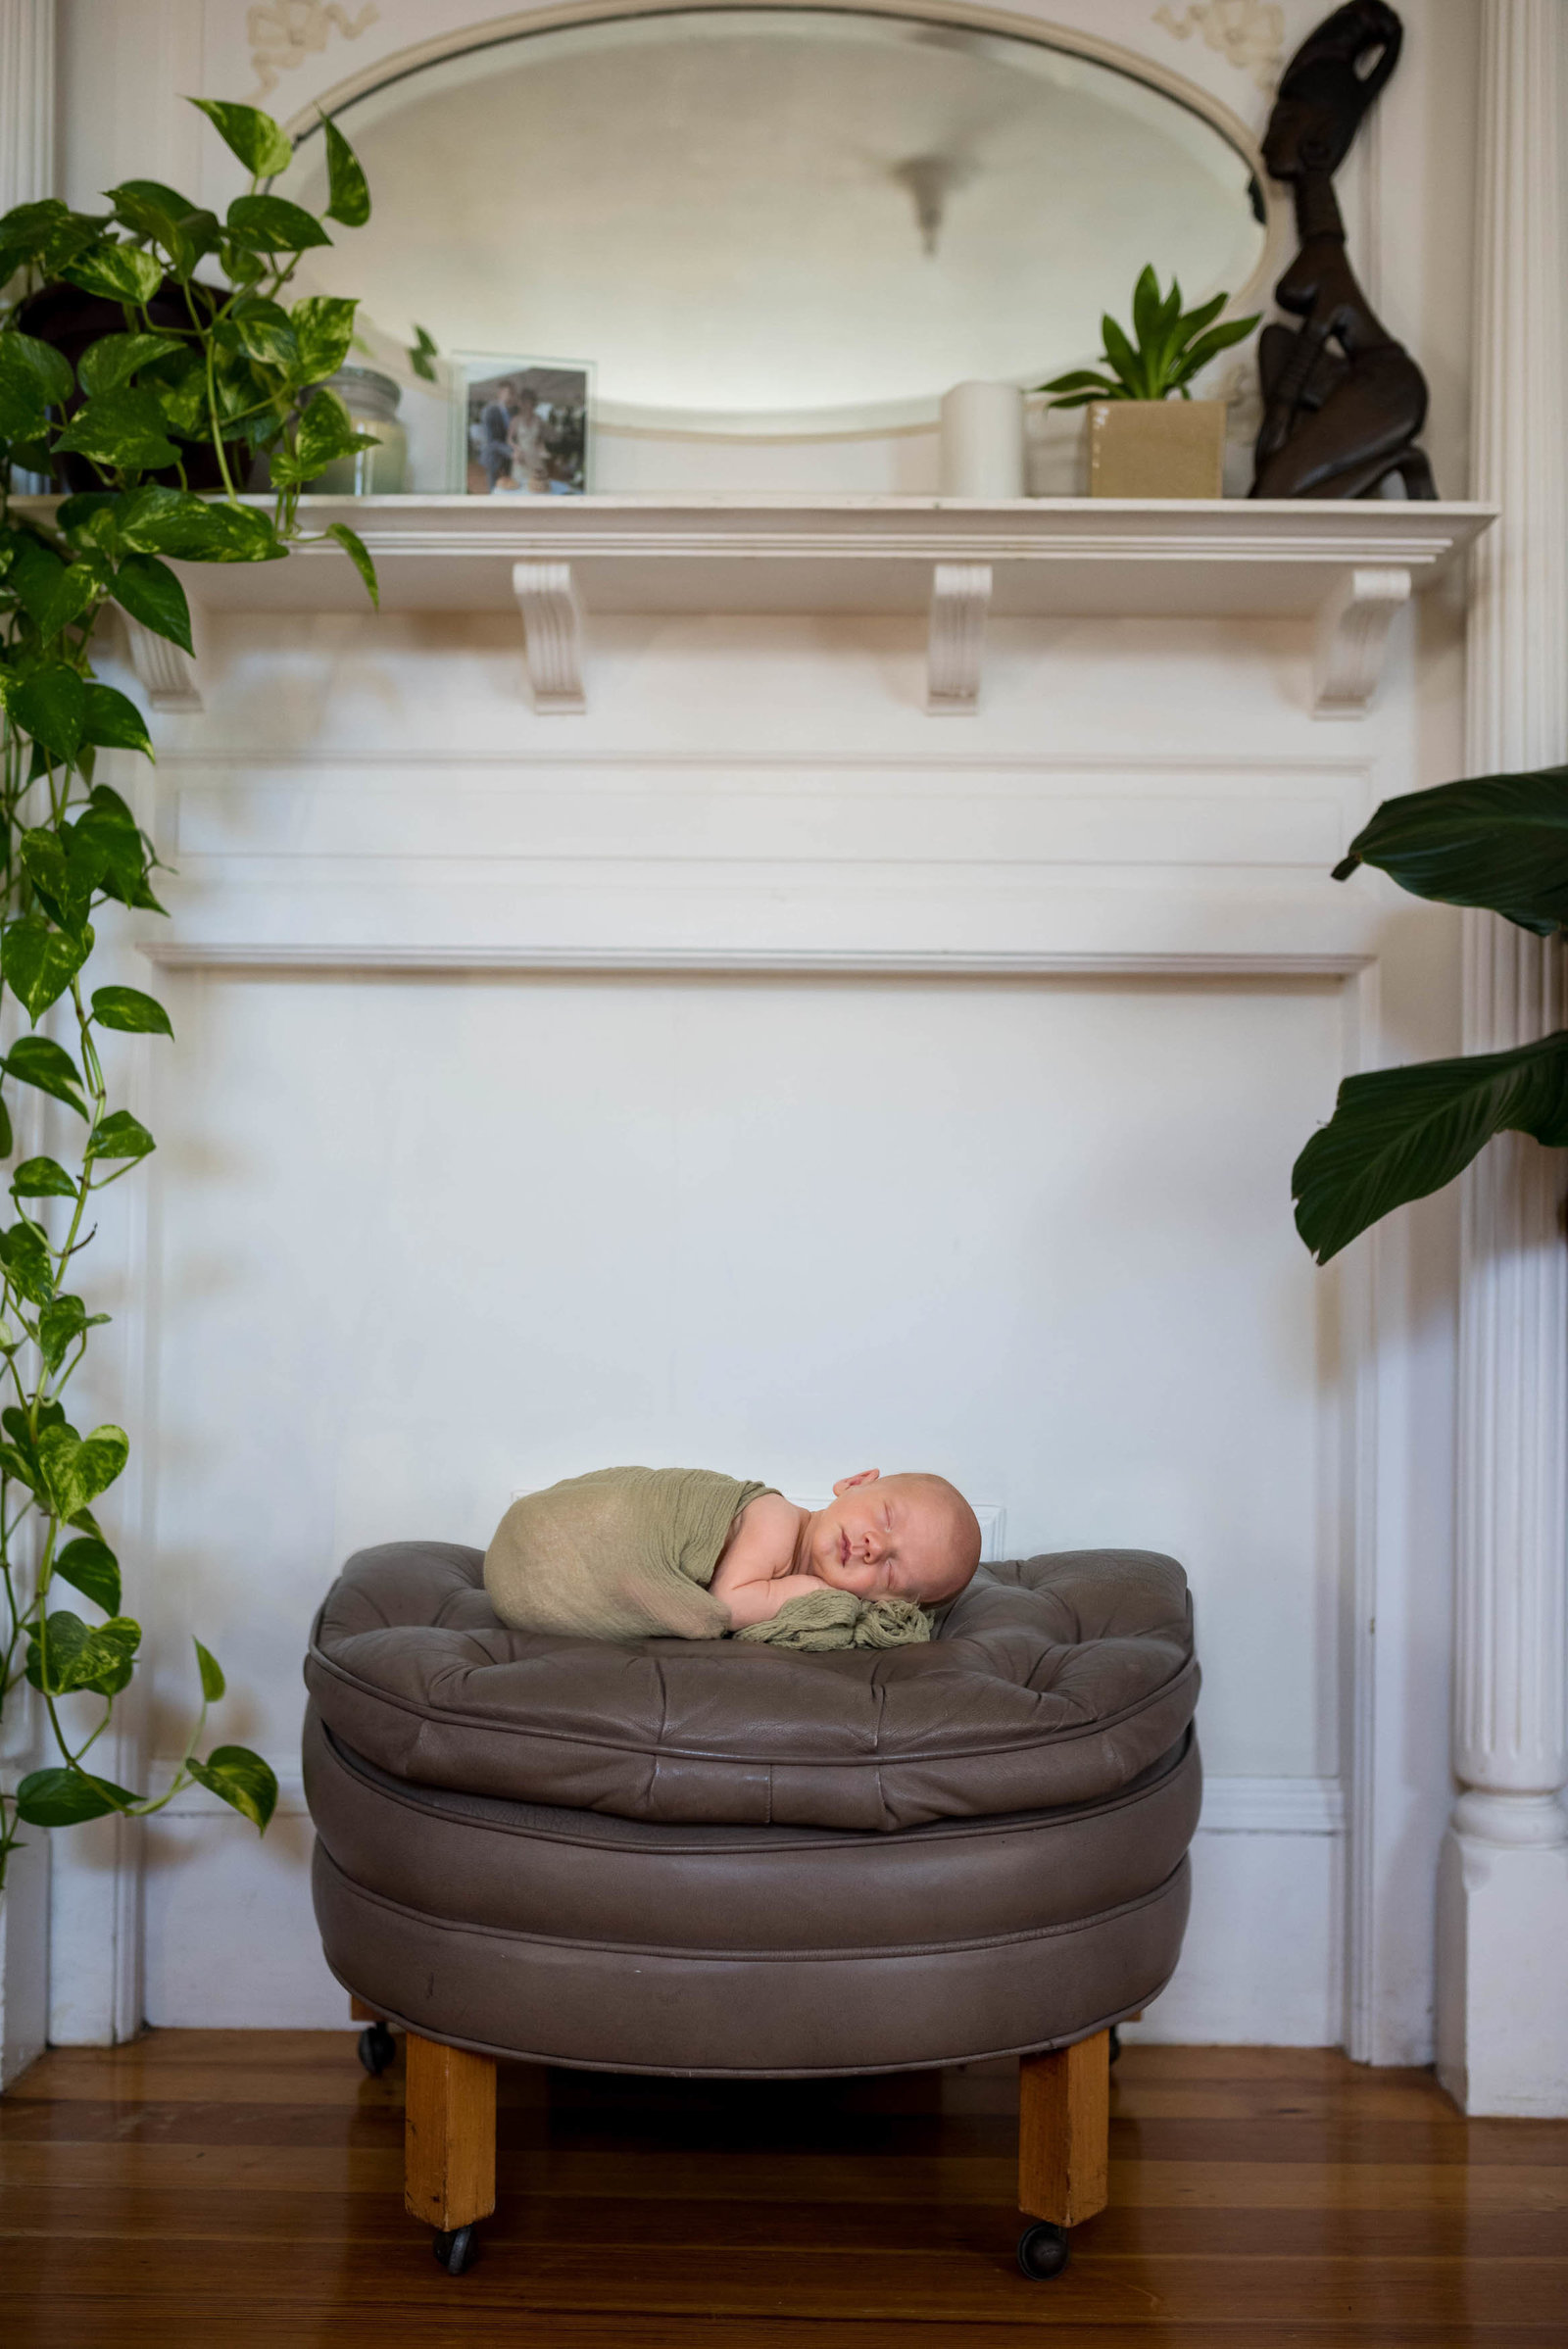 Boston-Newborn-Photographer-Lifestyle-Documentary-Home-Styled-Session-228